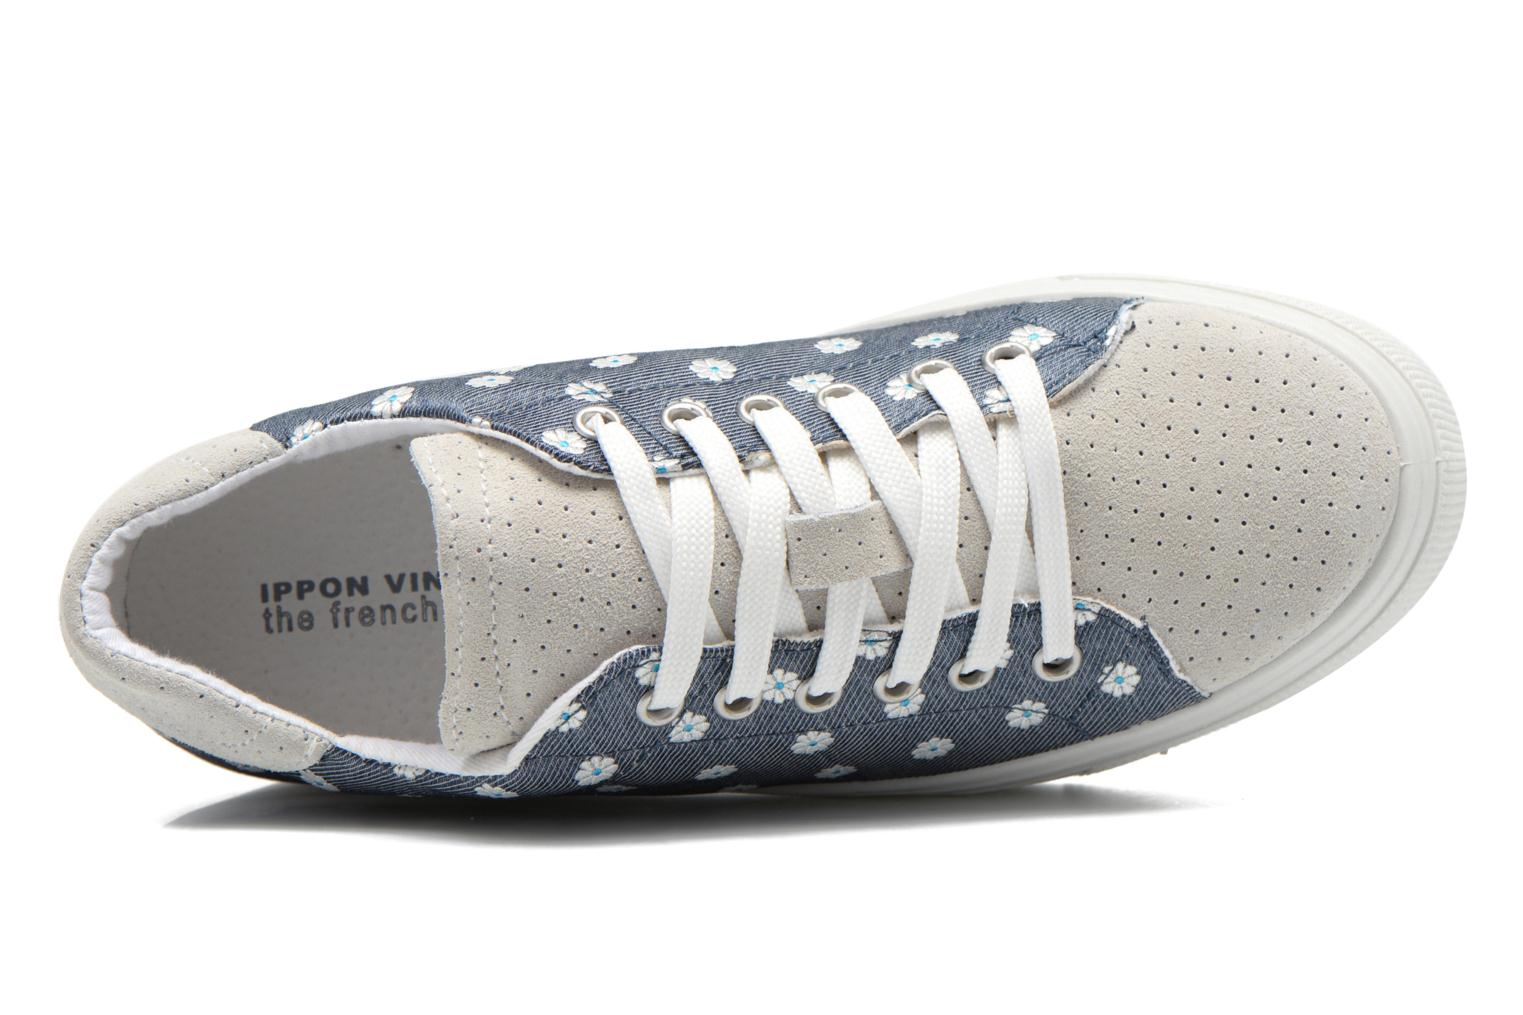 Trainers Ippon Vintage Tokyo jeans Multicolor view from the left